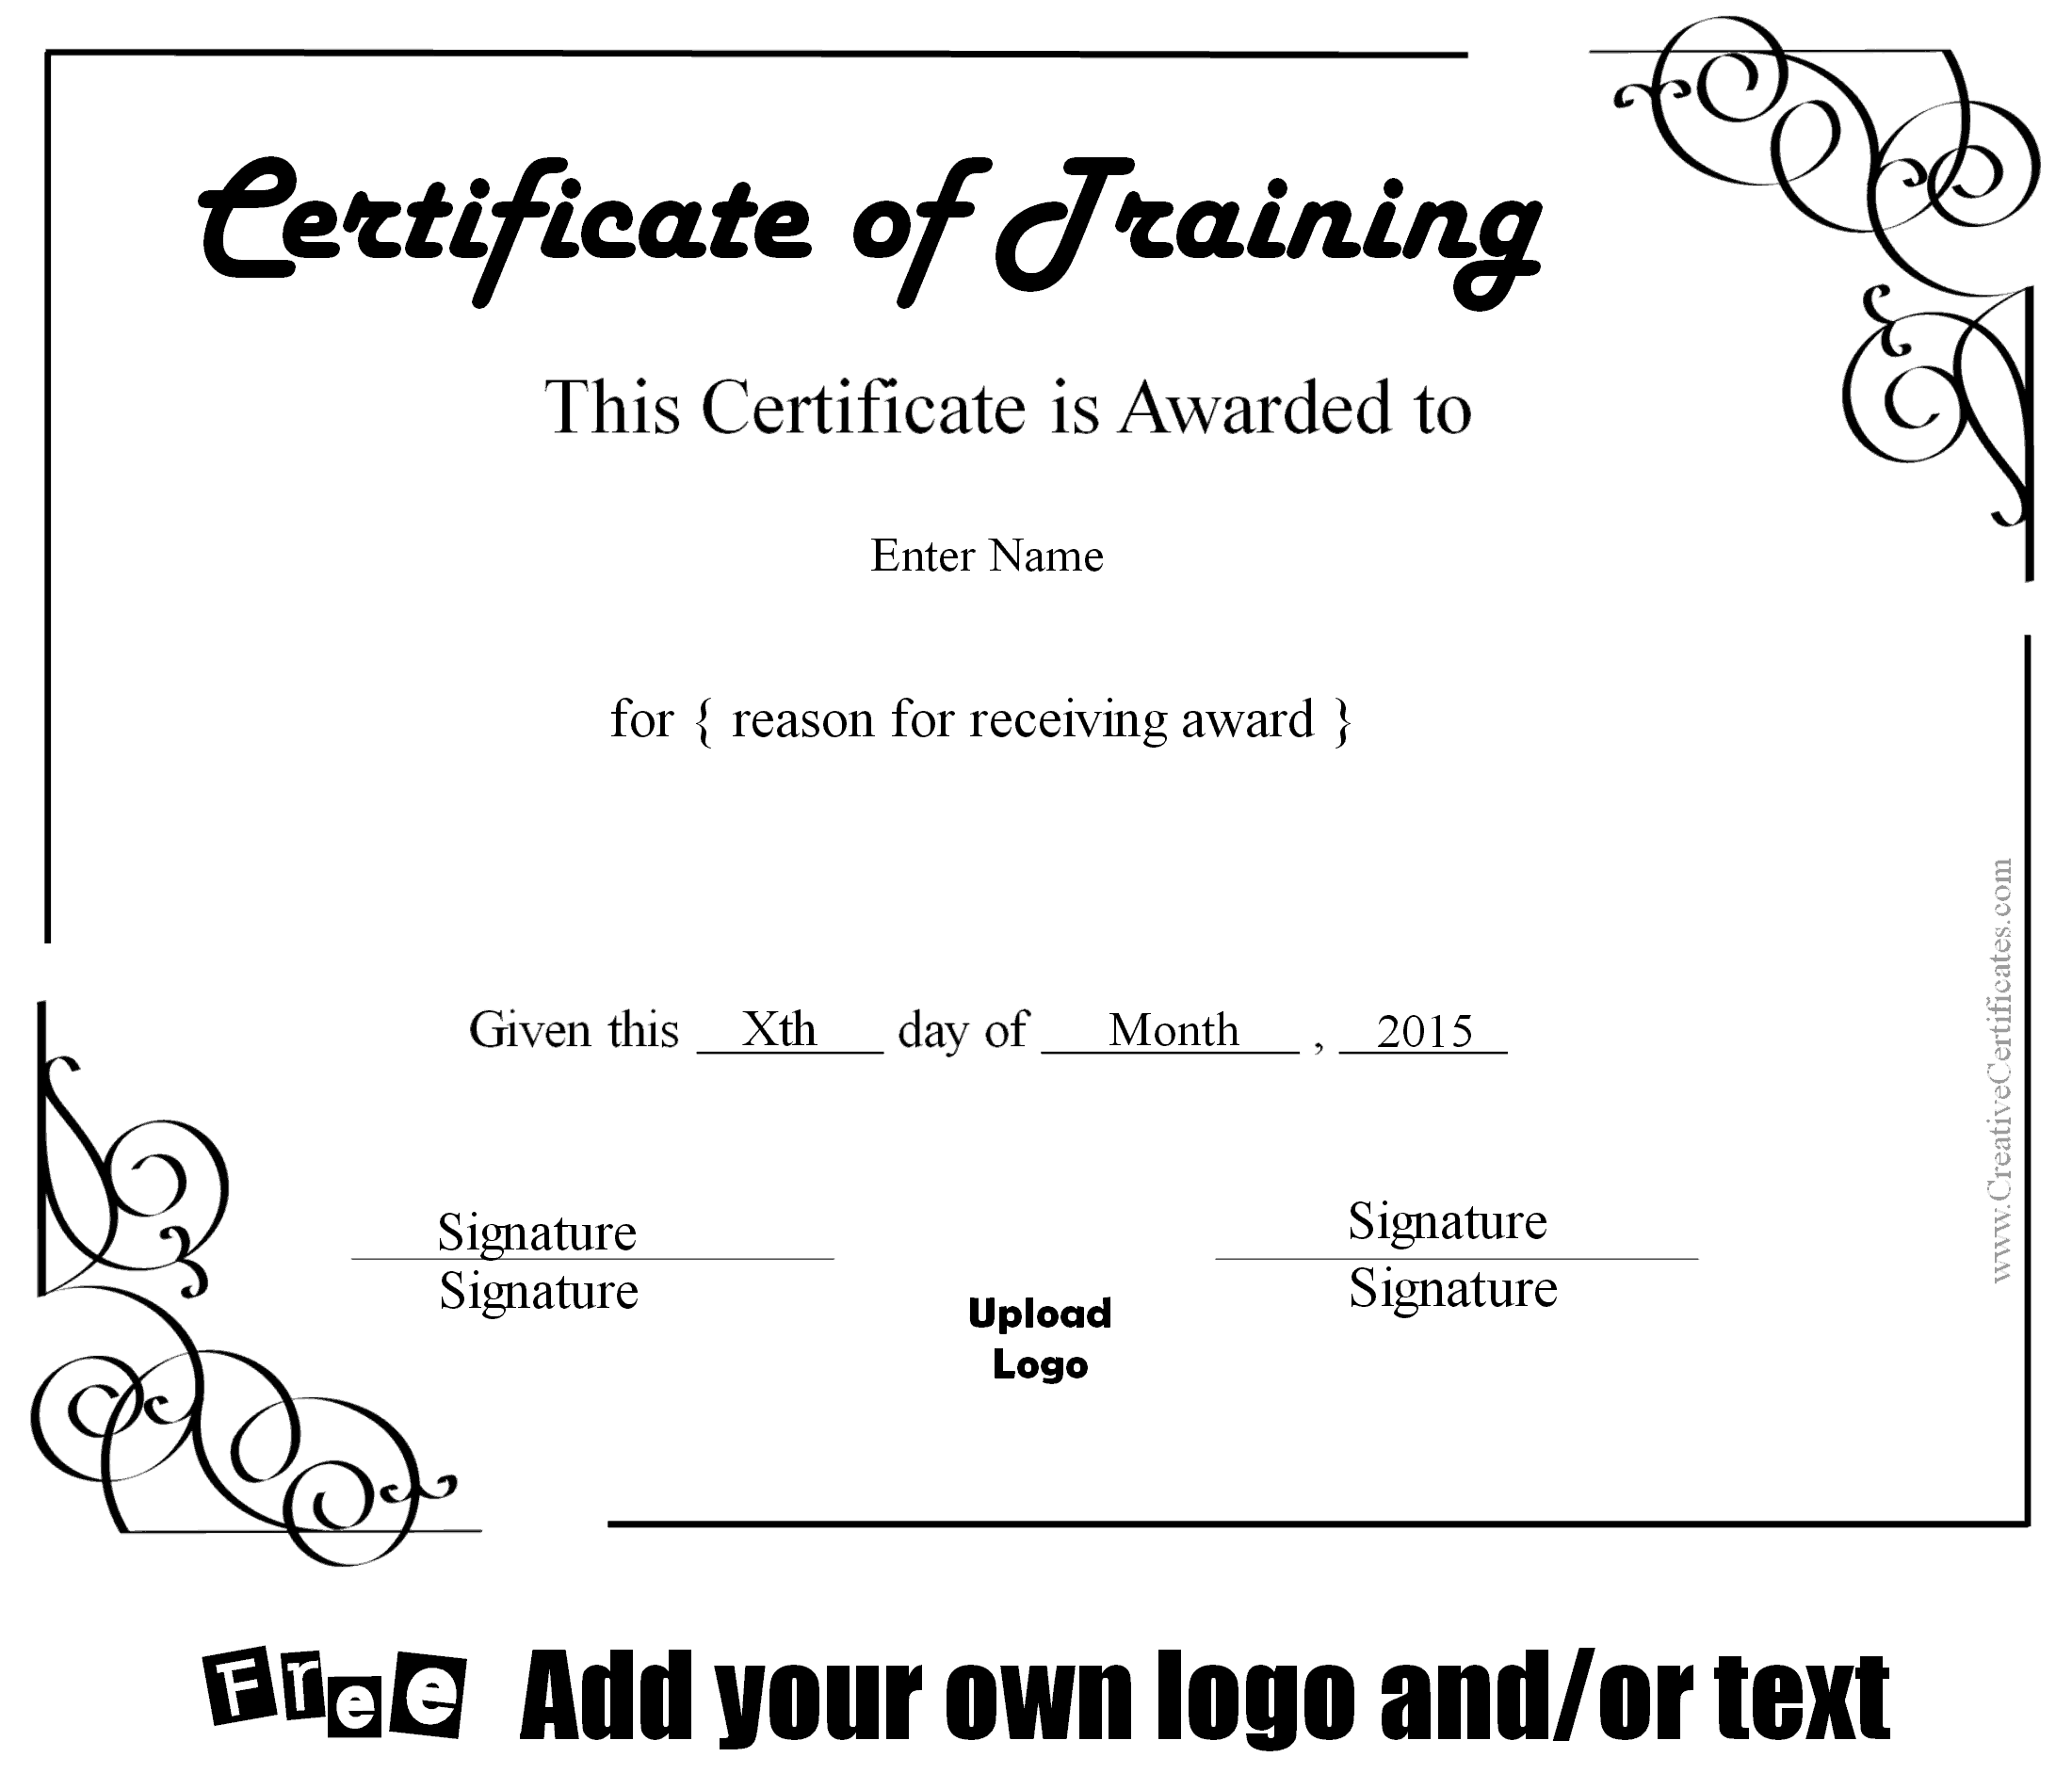 army certificate of training template – Army Certificate of Achievement Template